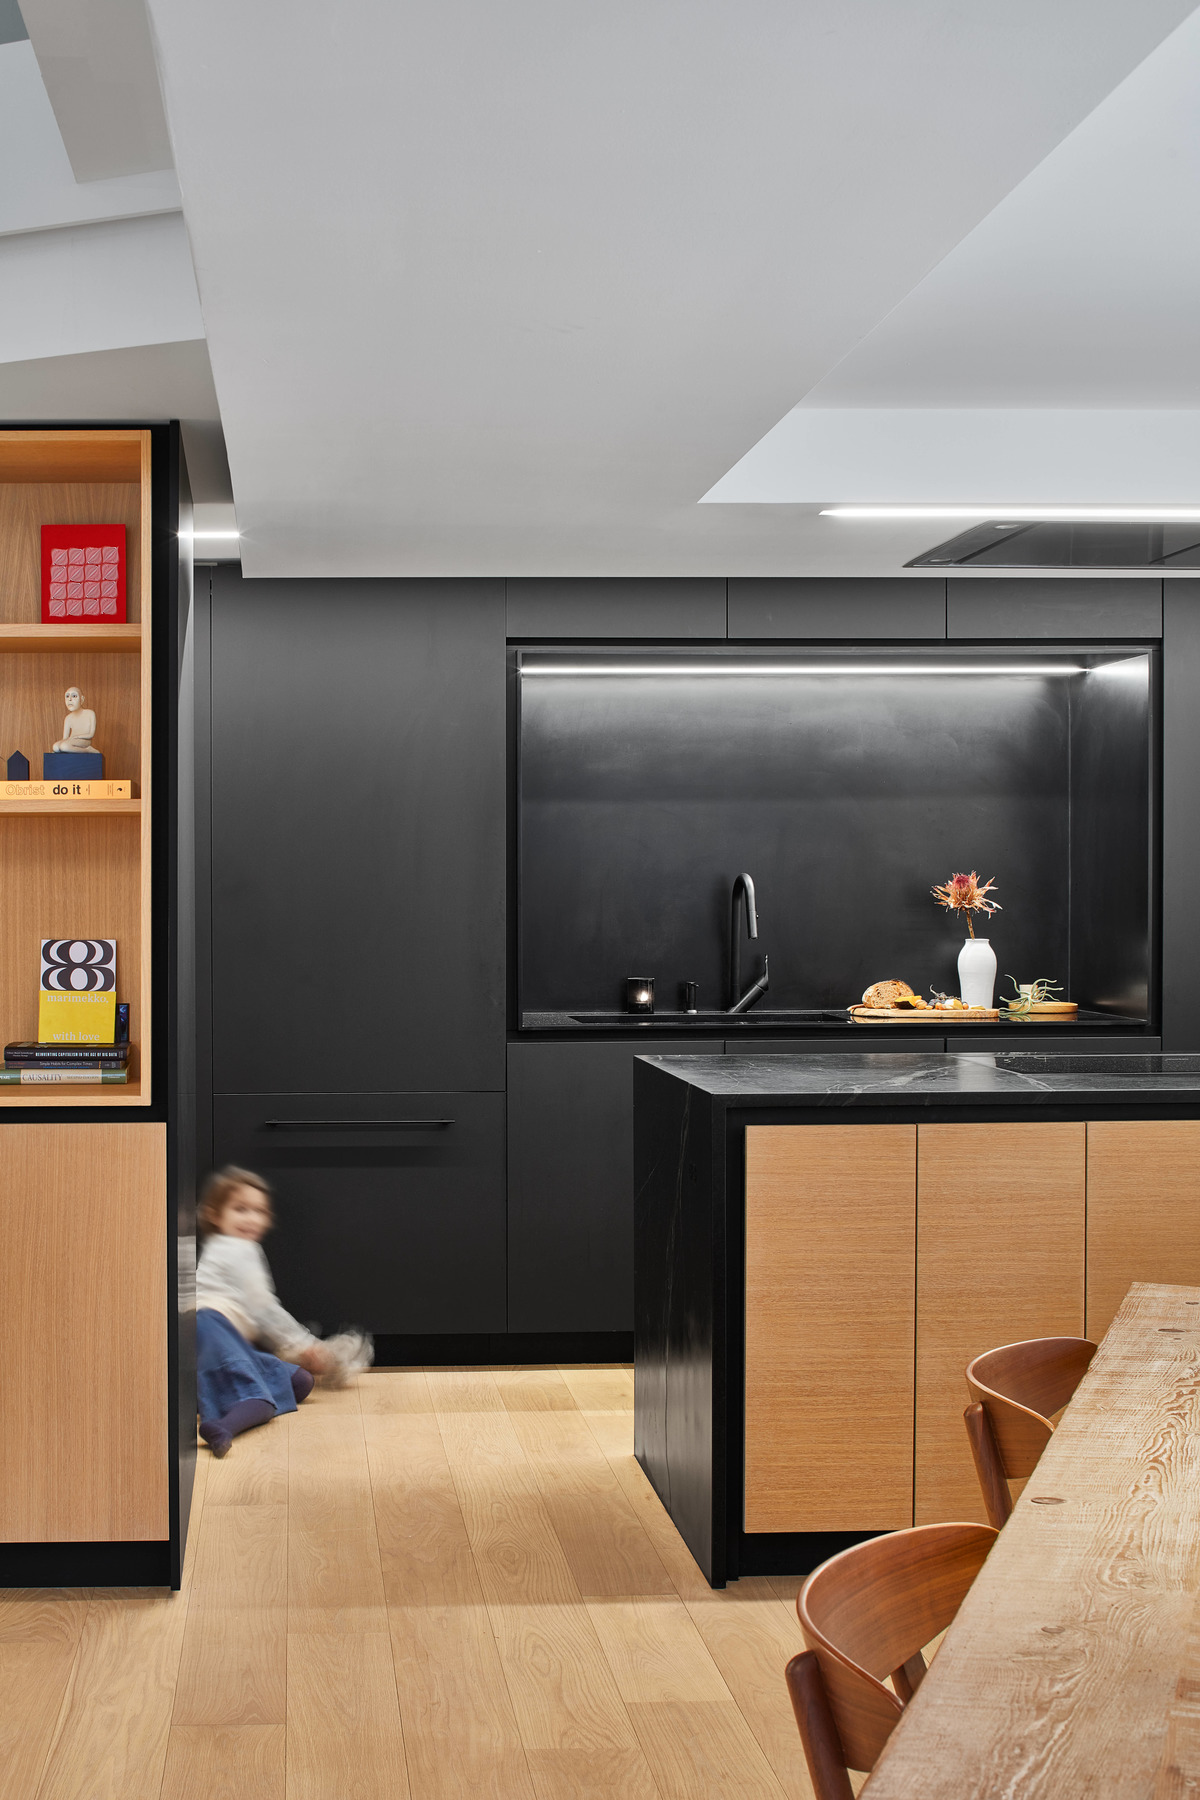 A modern matte black kitchen with hardware free cabinets and a large island with wood accents.